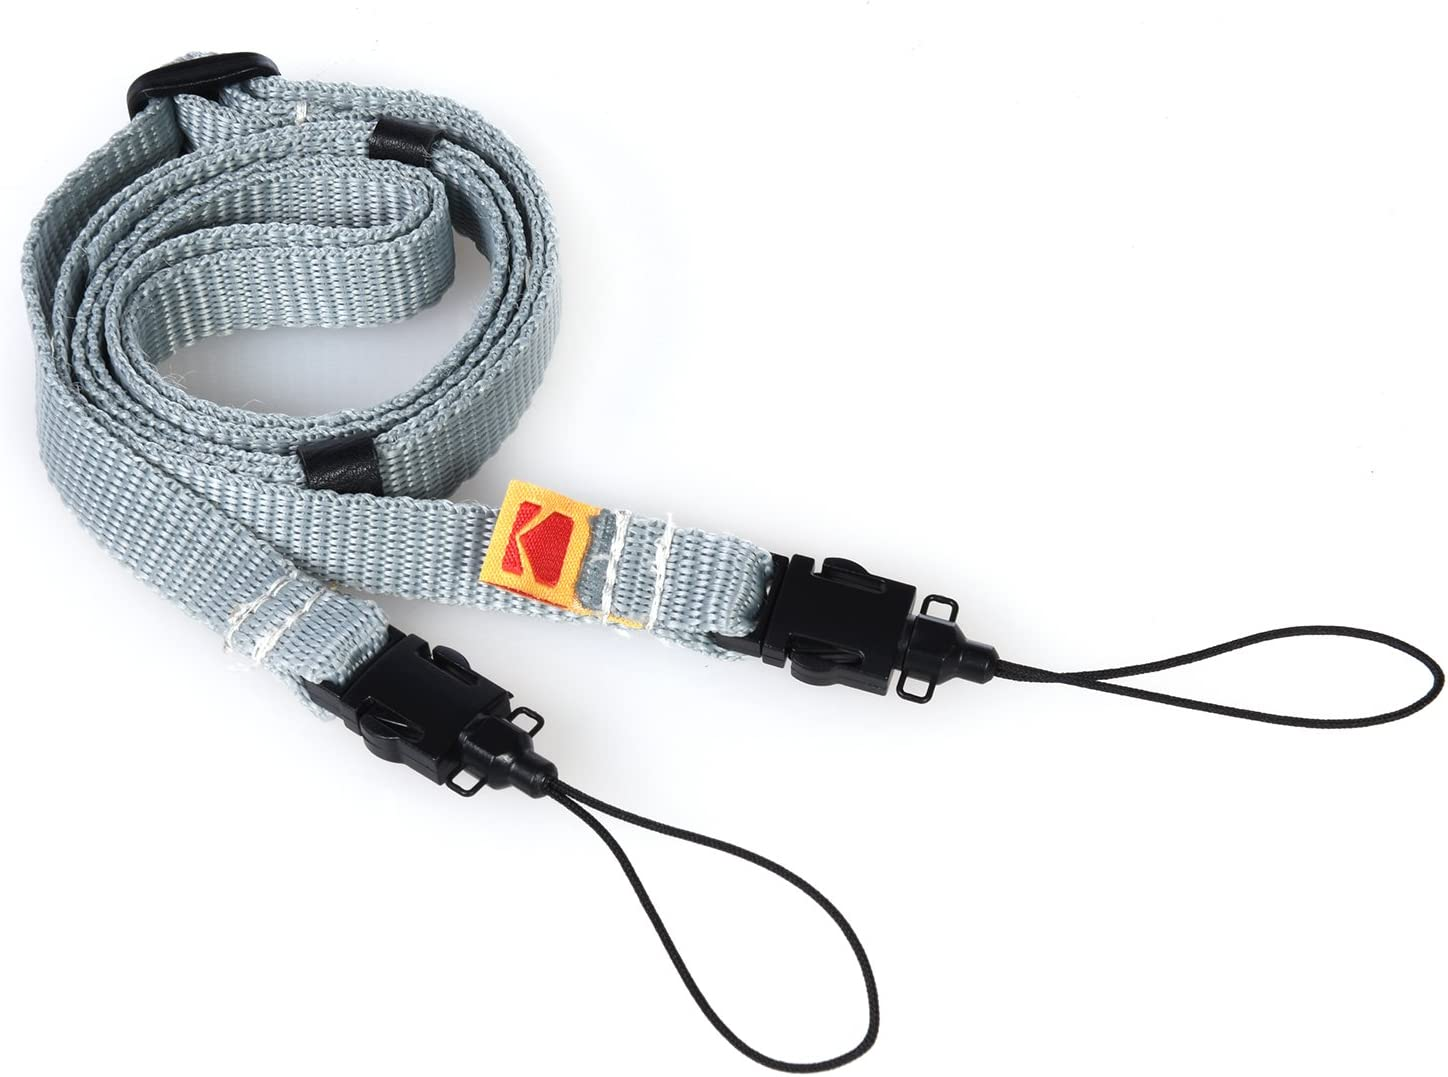 Kodak Printomatic Camera Neck Strap (Grey) – Adjustable, Convenient, Practical – The Easiest Way to Capture Every Kodak Moment